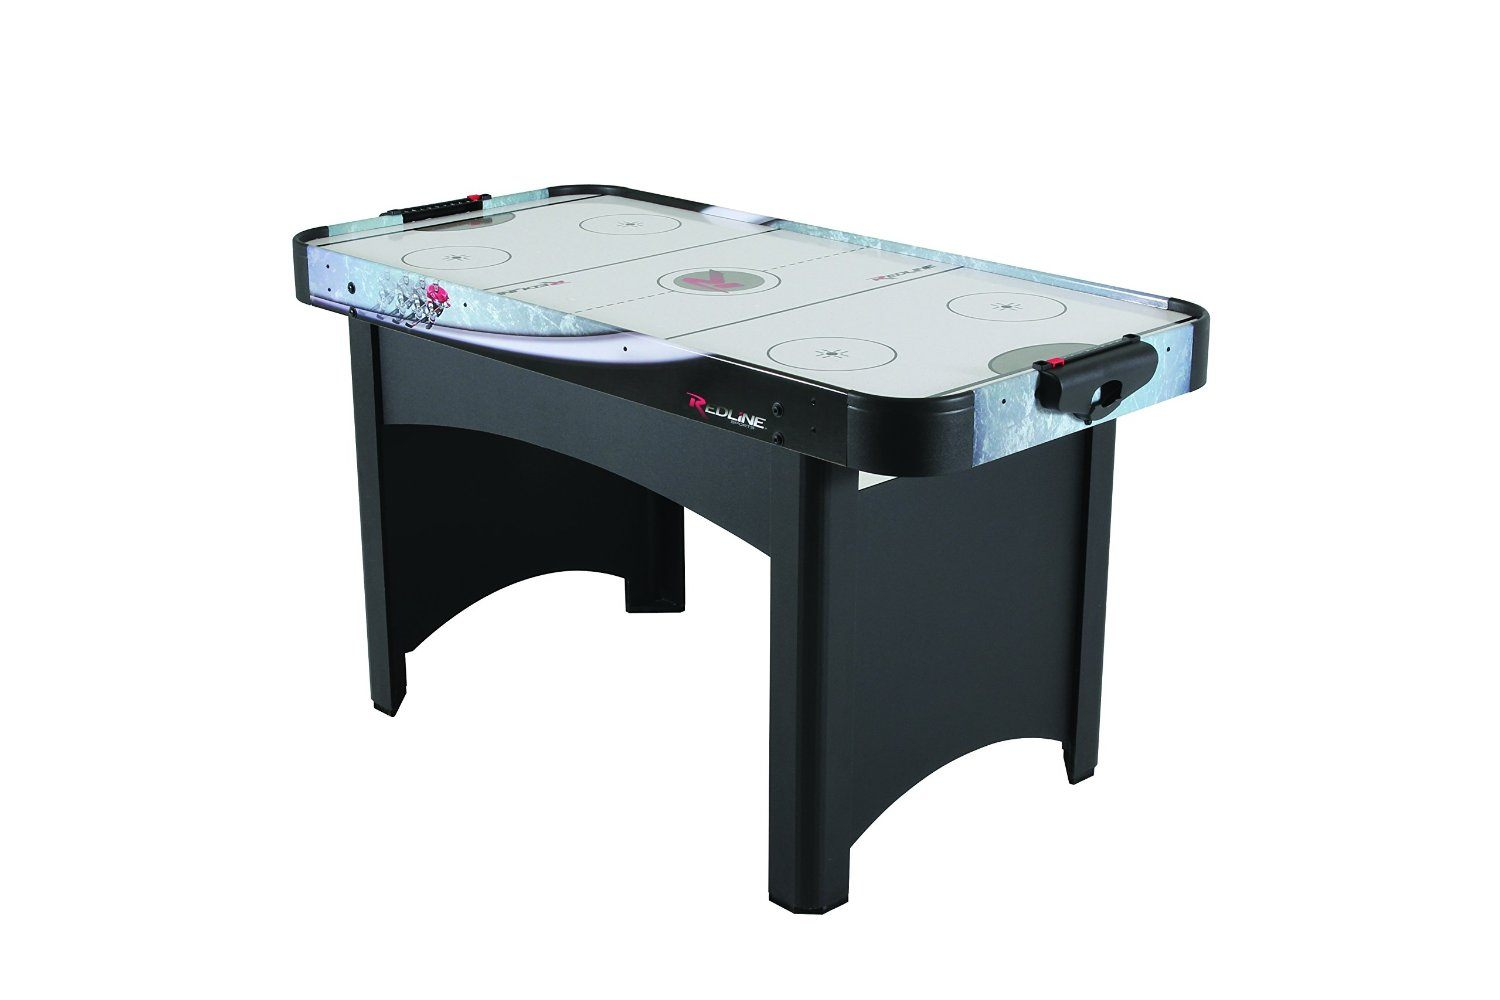 Redline Acclaim 4.5' Hockey Table